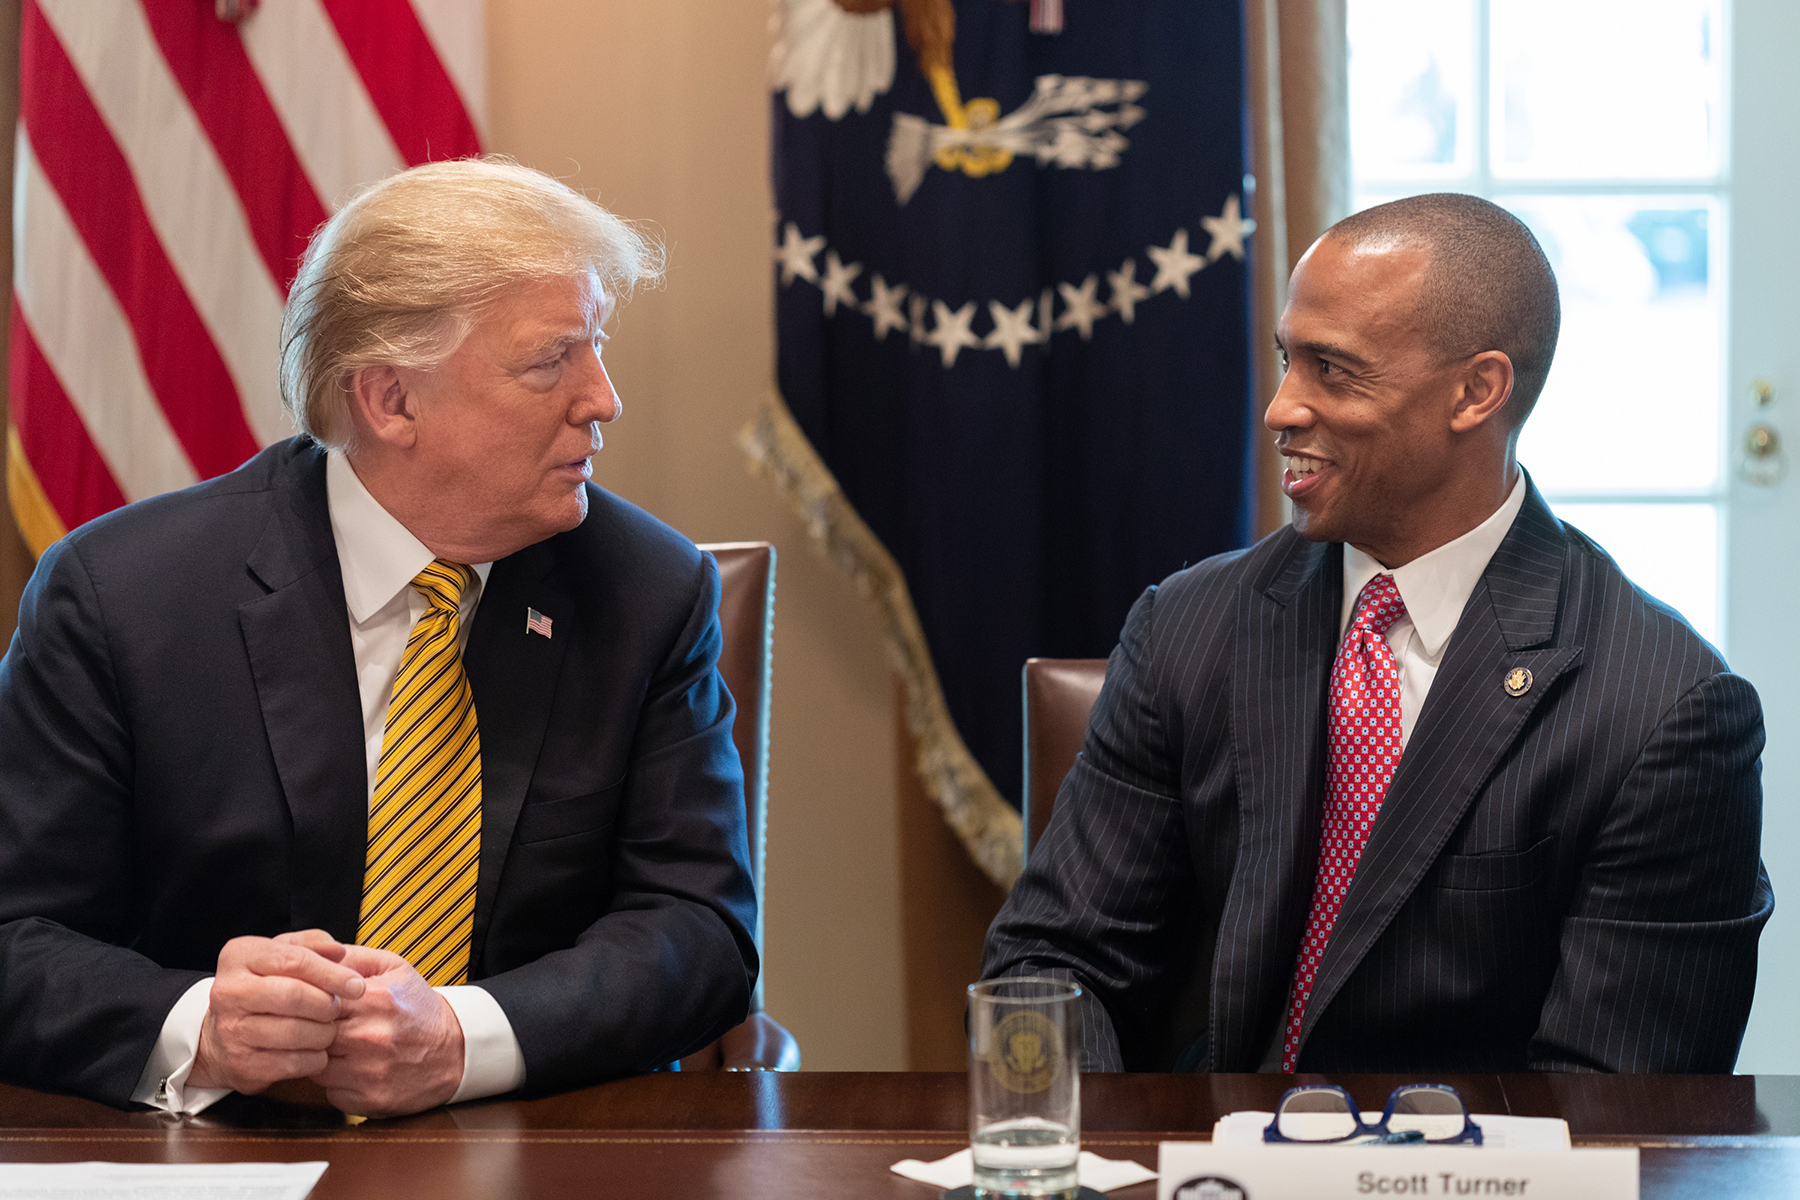 President Trump introduces Scott Turner as the Executive Director of the White House Opportunity and Revitalization Council